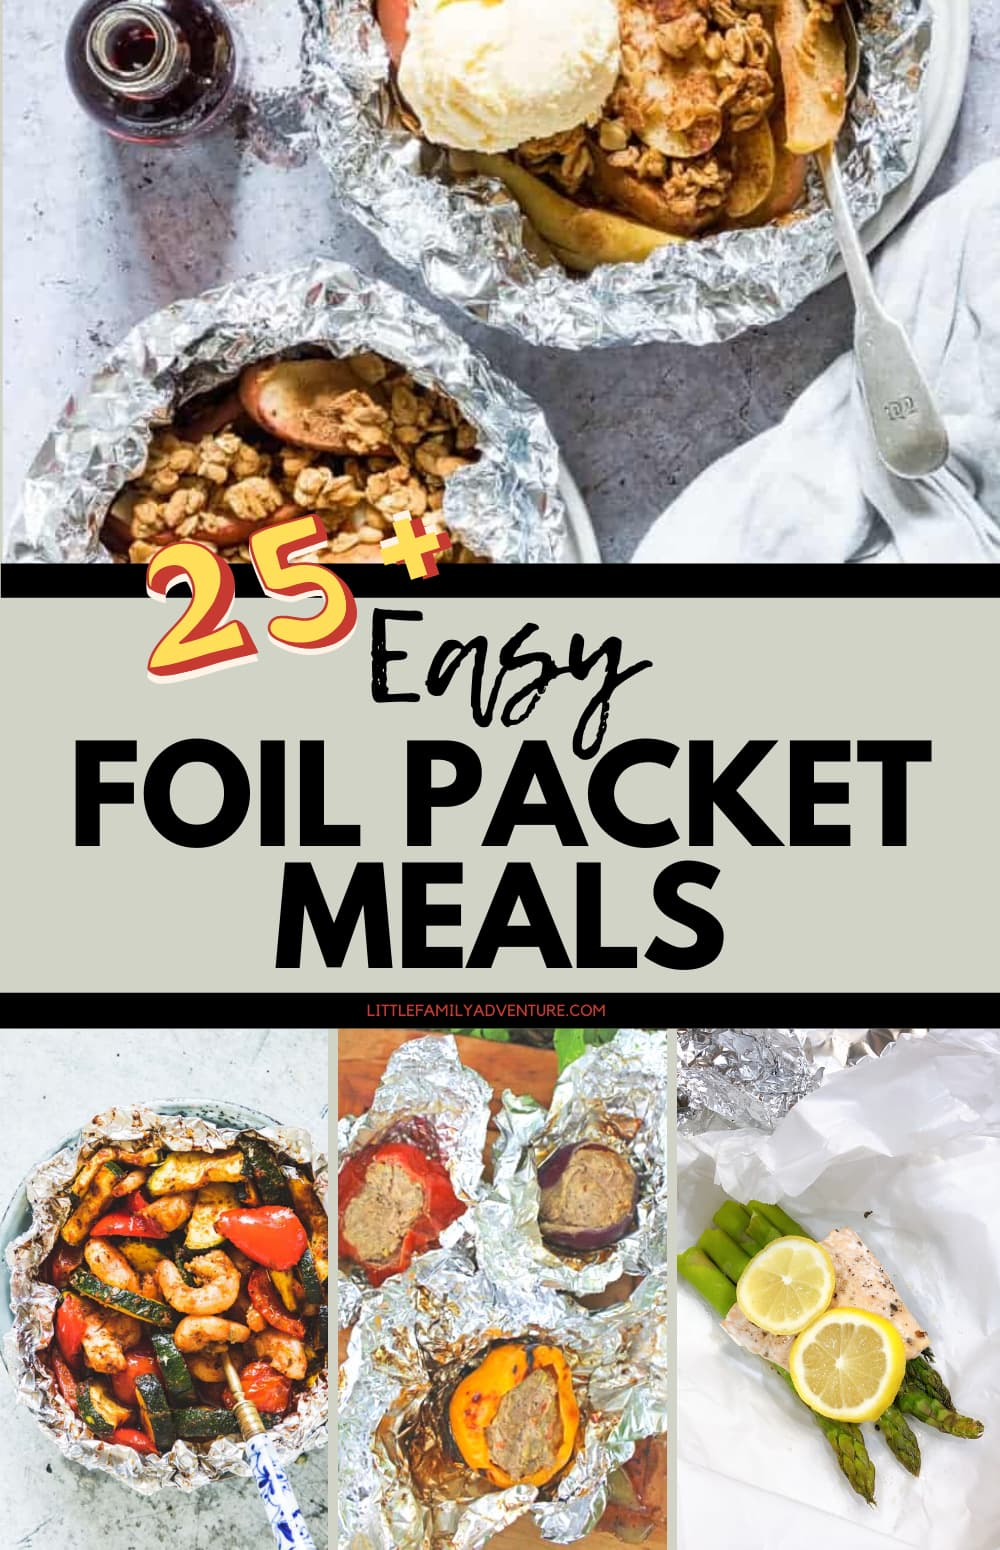 foil packet meals graphic